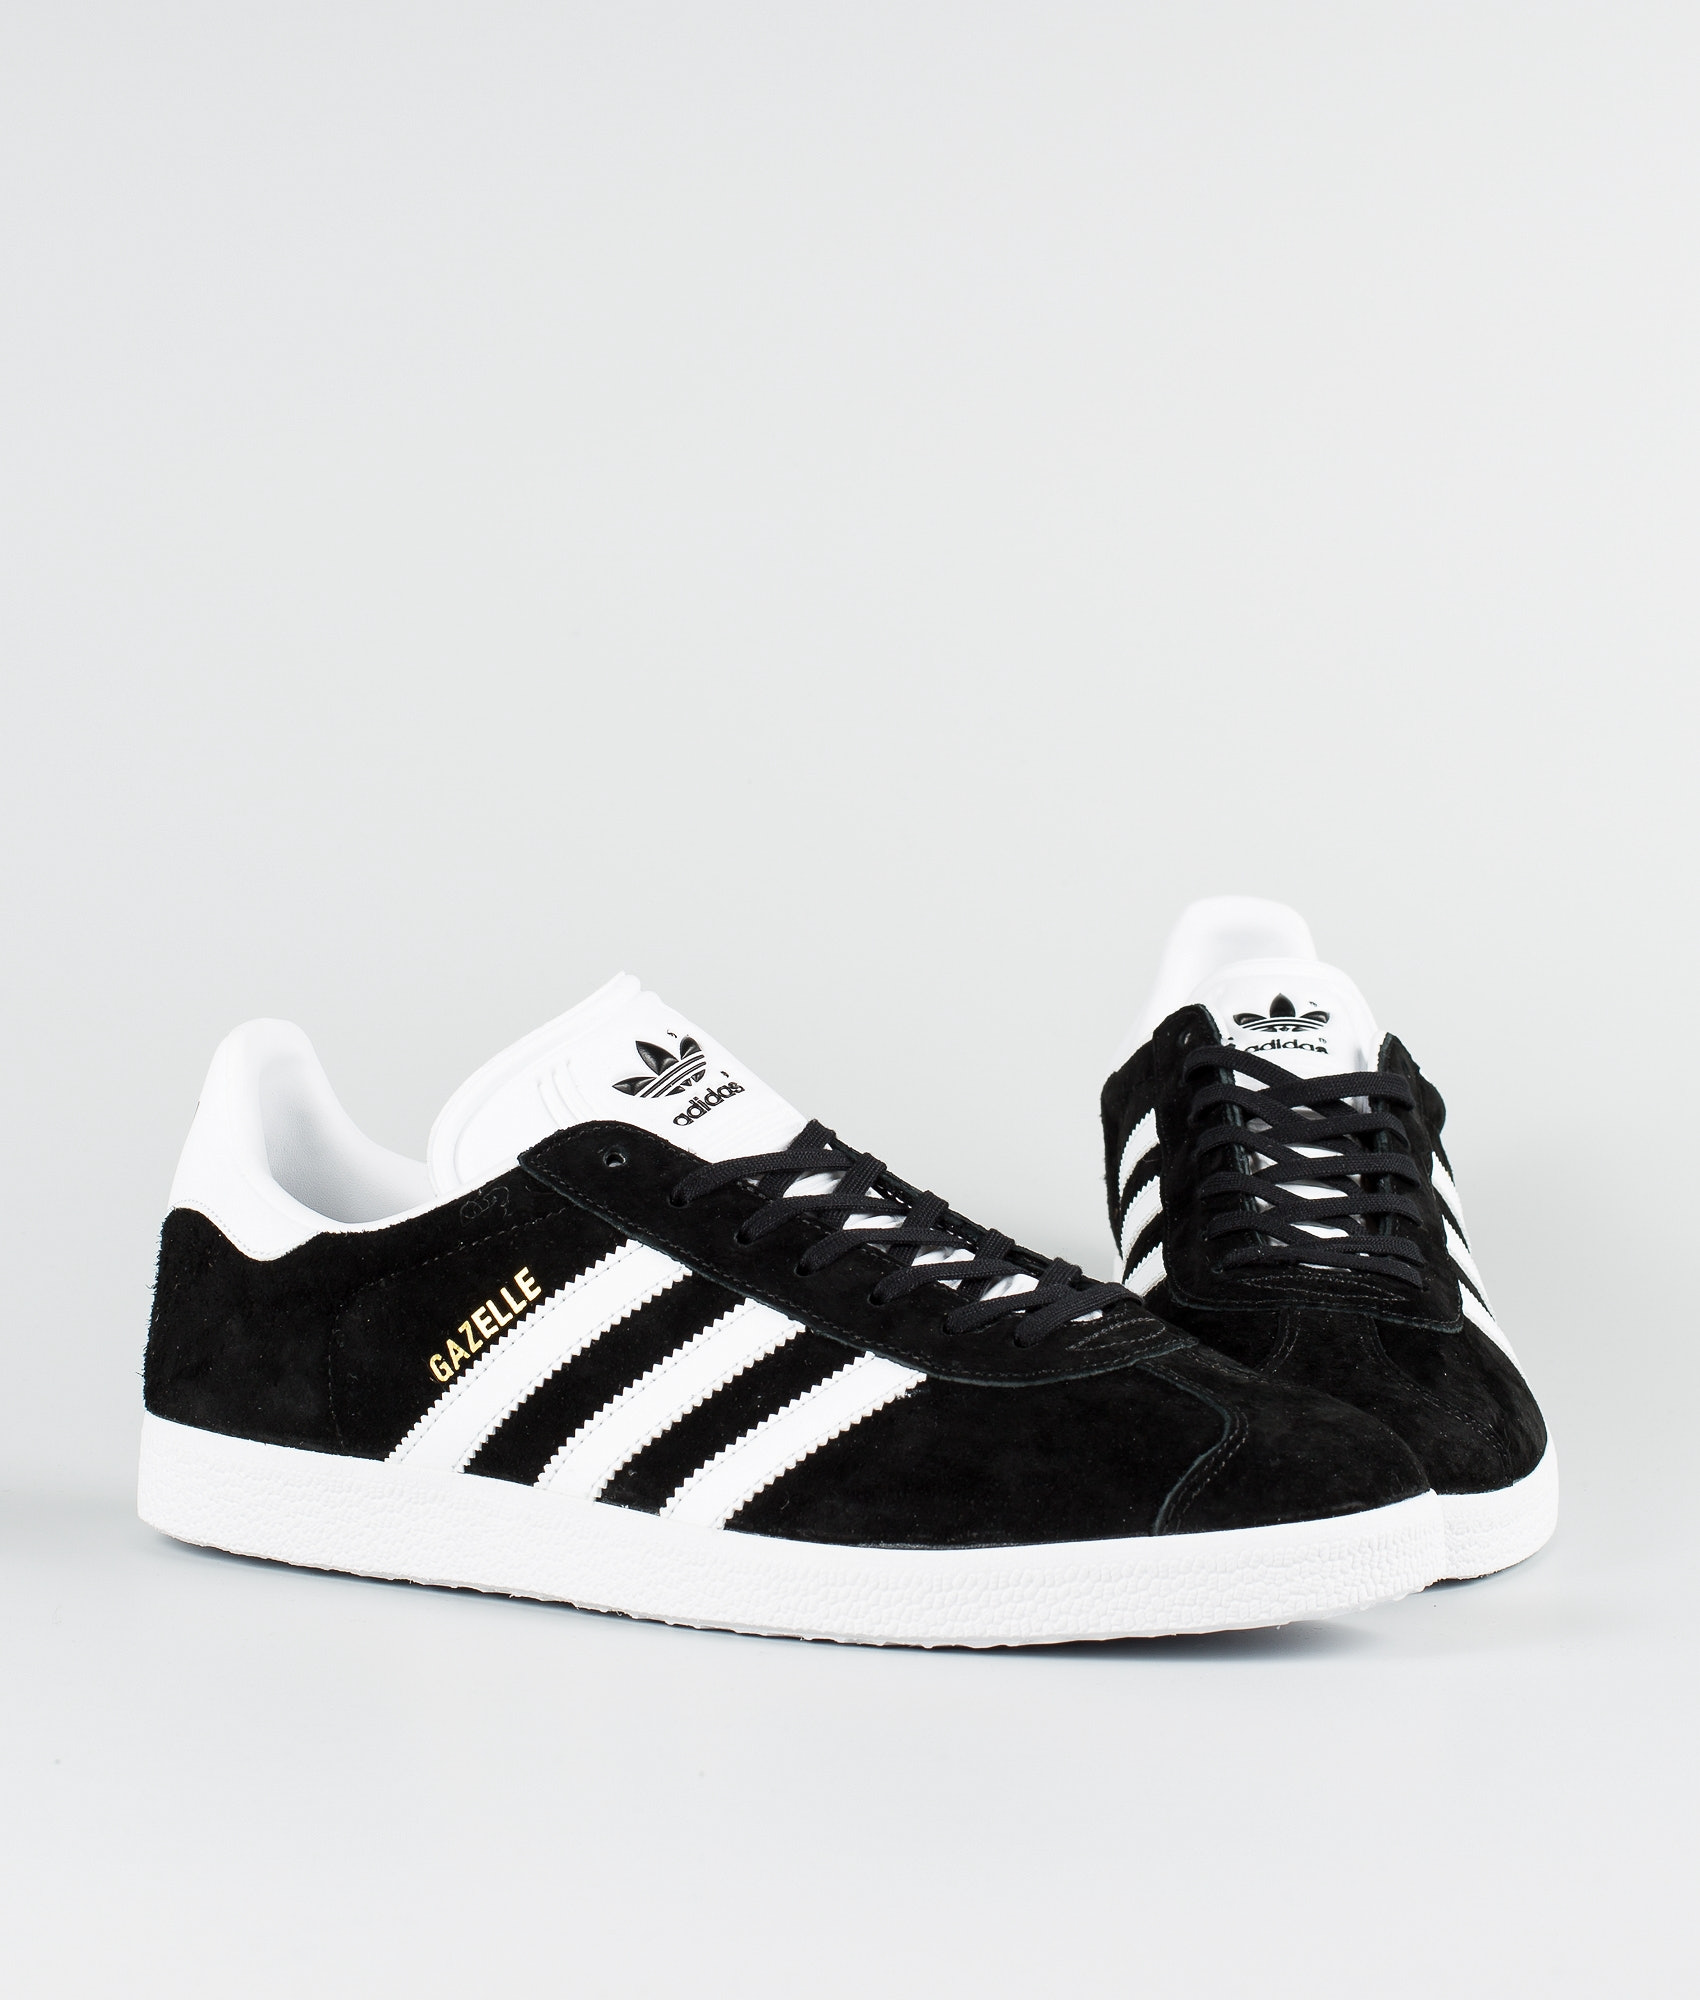 79b9489c6b3 Adidas Originals Gazelle Sko Core Black/White/Goldmt - Ridestore.no